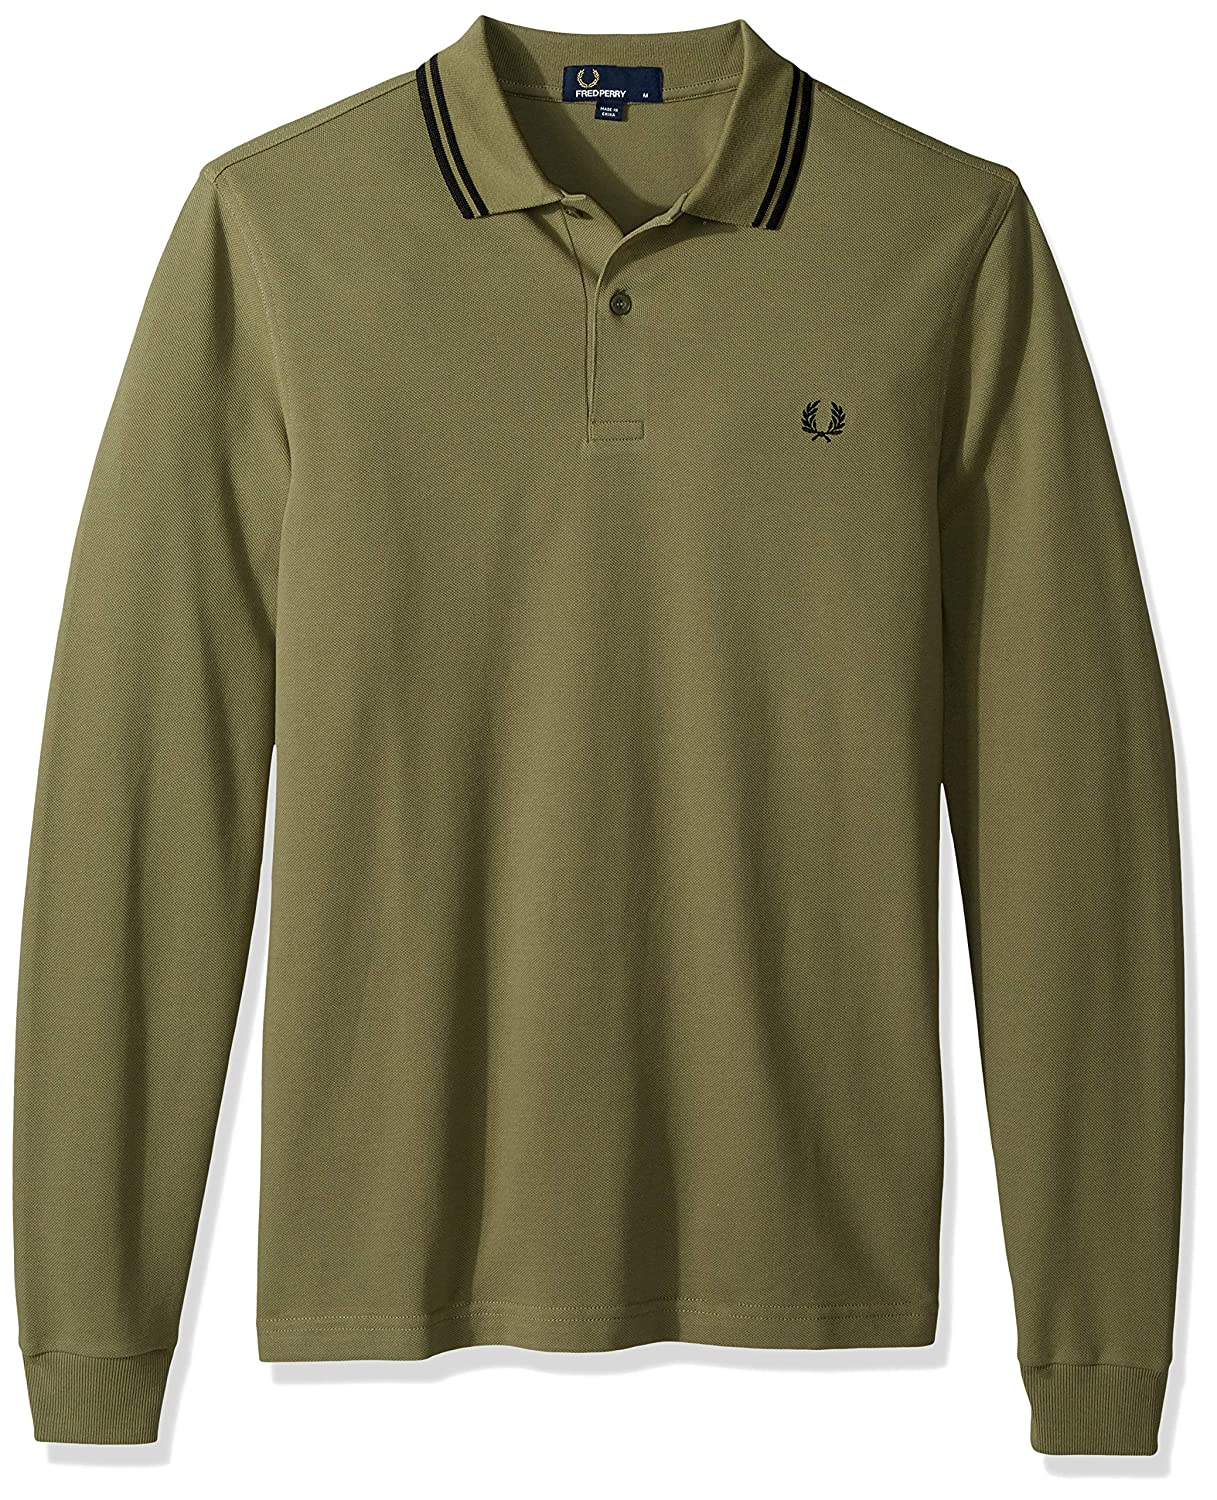 Vert S Frouge Perry FP Ls Twin Tipped Shirt Haut Thermique Homme